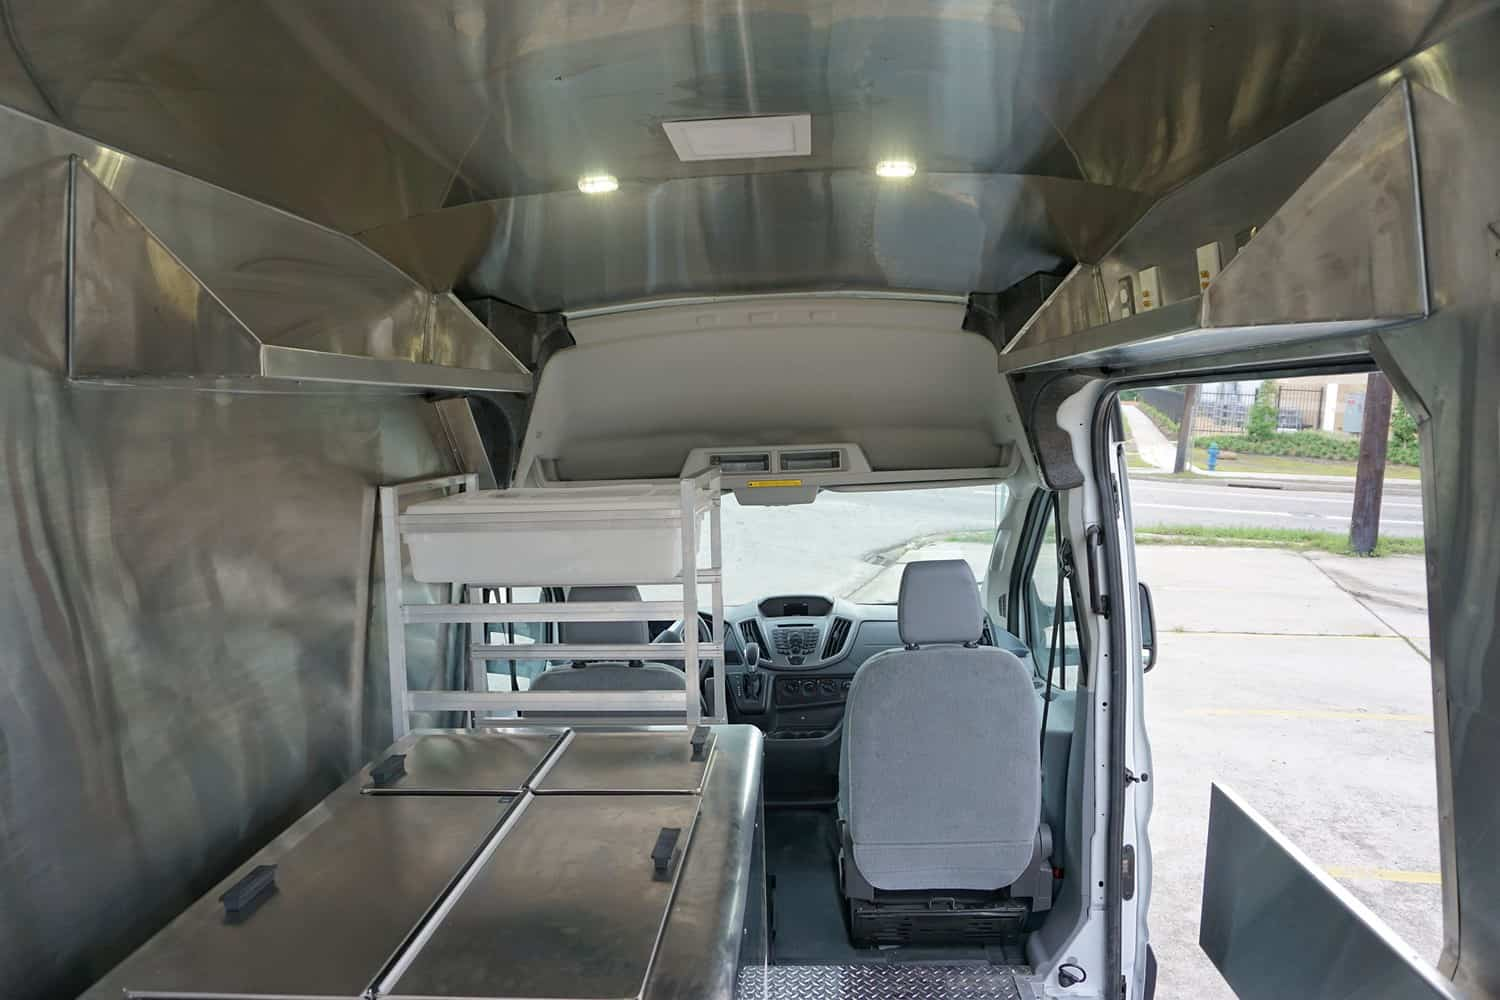 Pokey'os Food Truck Interior